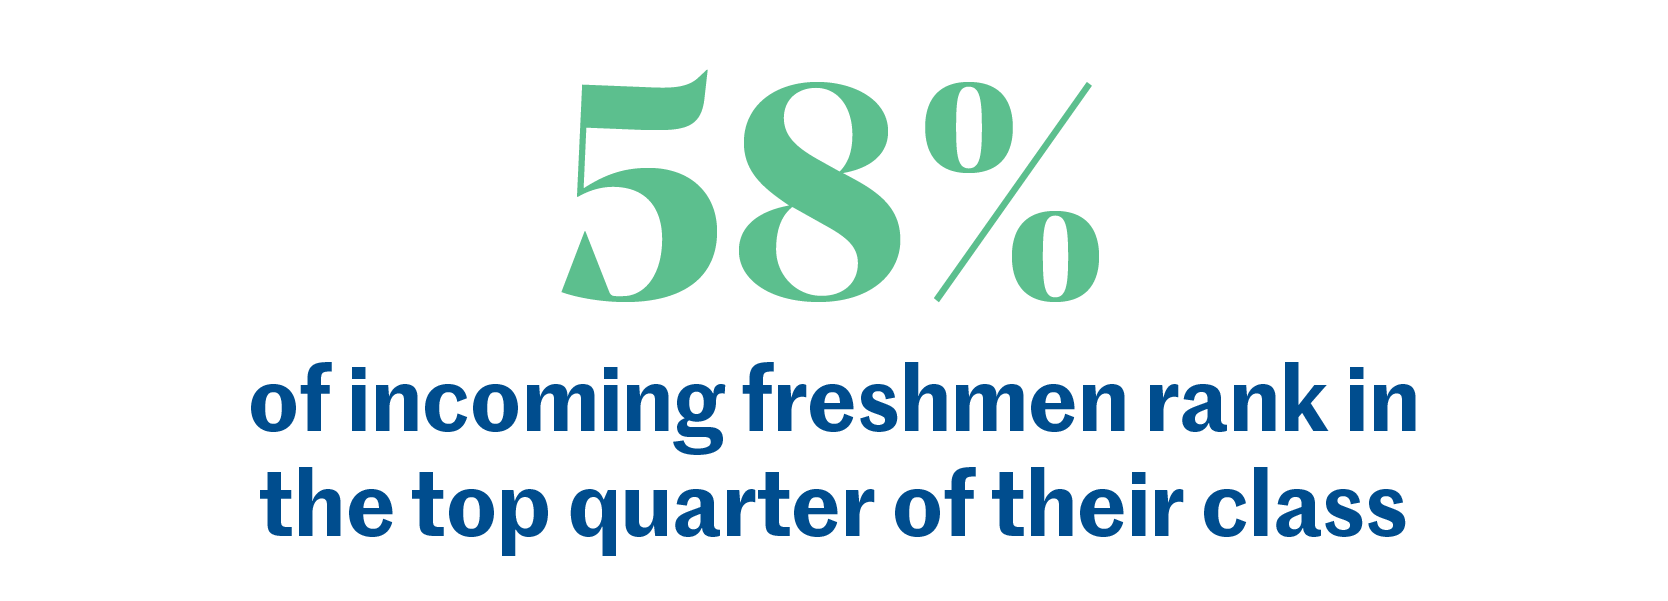 58% of incoming freshman rank in the top quarter of their class